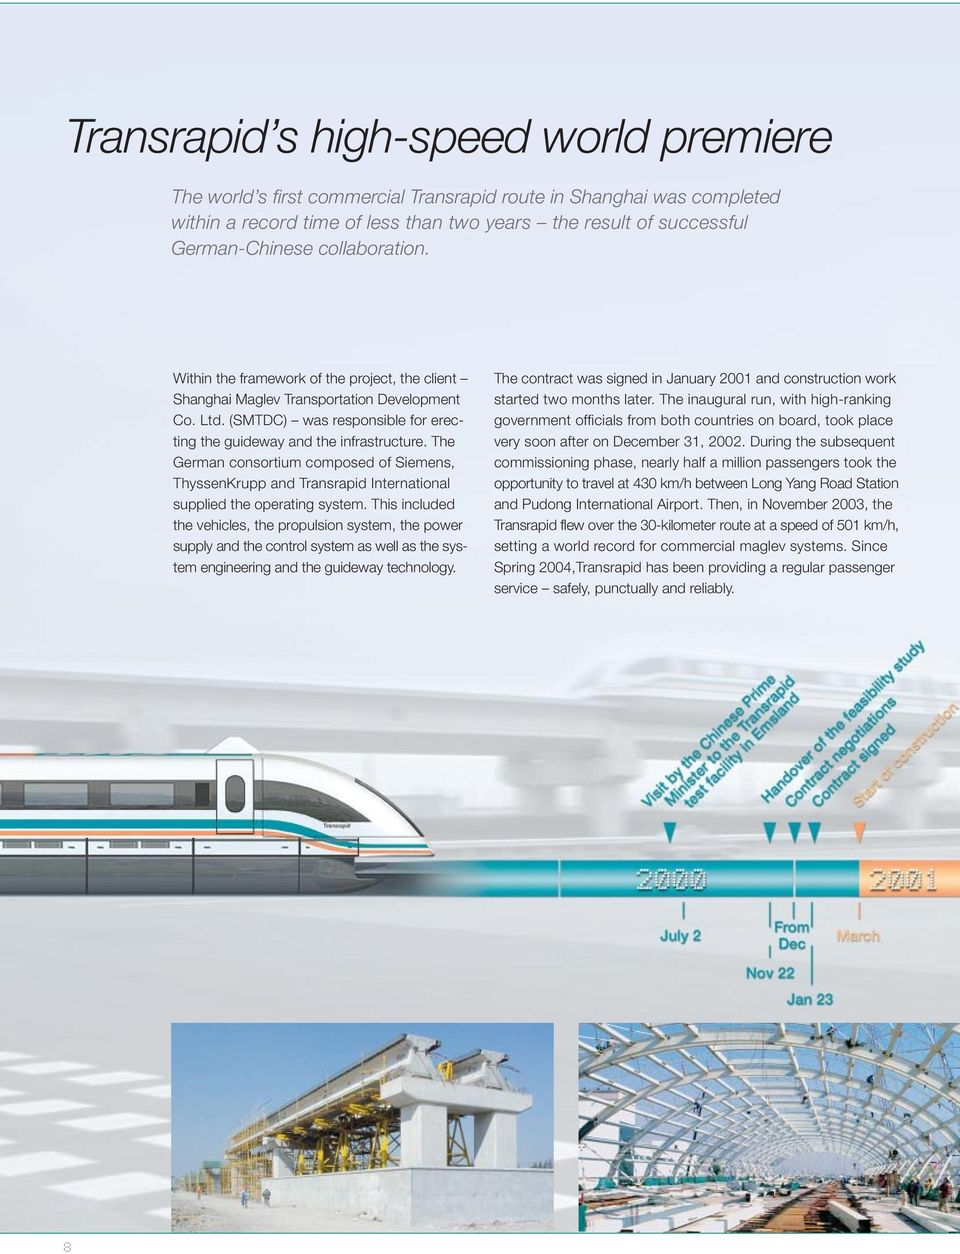 The German consortium composed of Siemens, ThyssenKrupp and Transrapid International supplied the operating system.